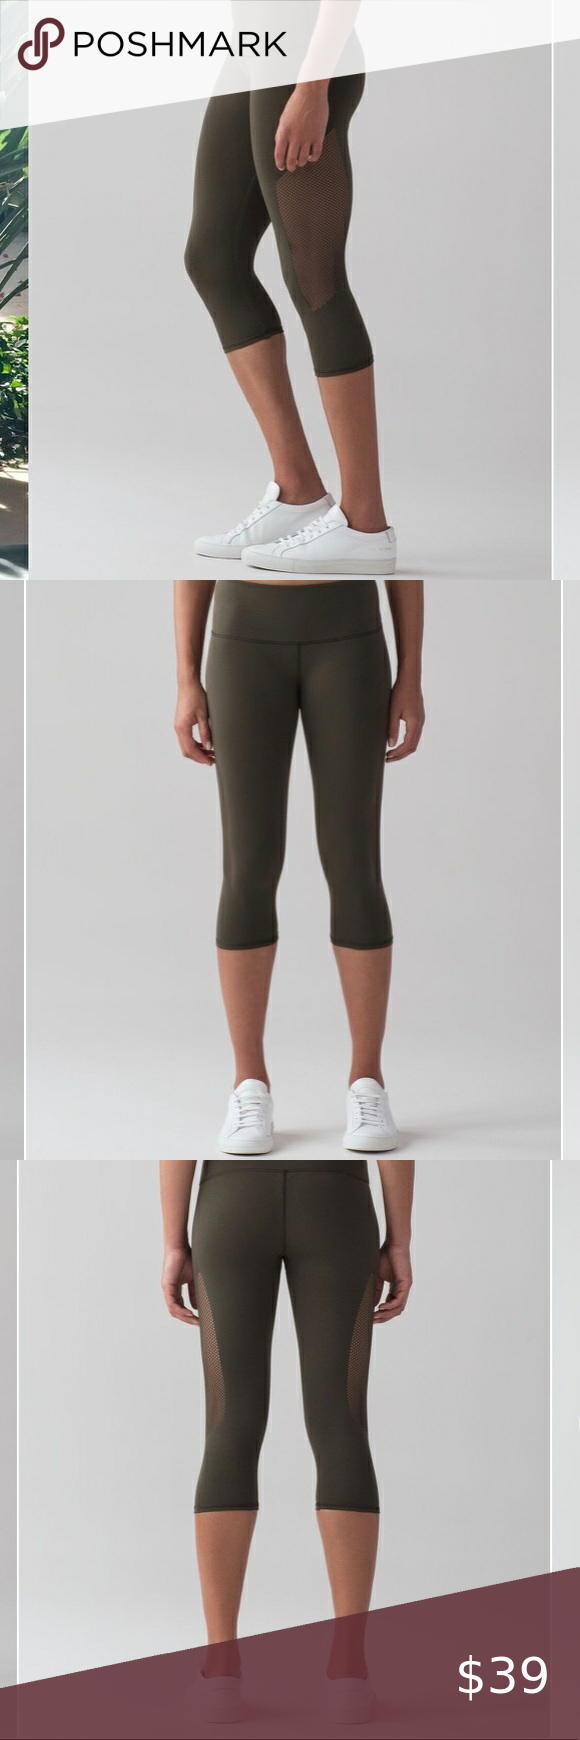 Lululemon Reveal Crop 15 Dark Olive Yoga Legging Express Yourself With A Striking Sweep Of Stylized Ventilation In 2020 Cropped Leggings Pants For Women Yoga Leggings